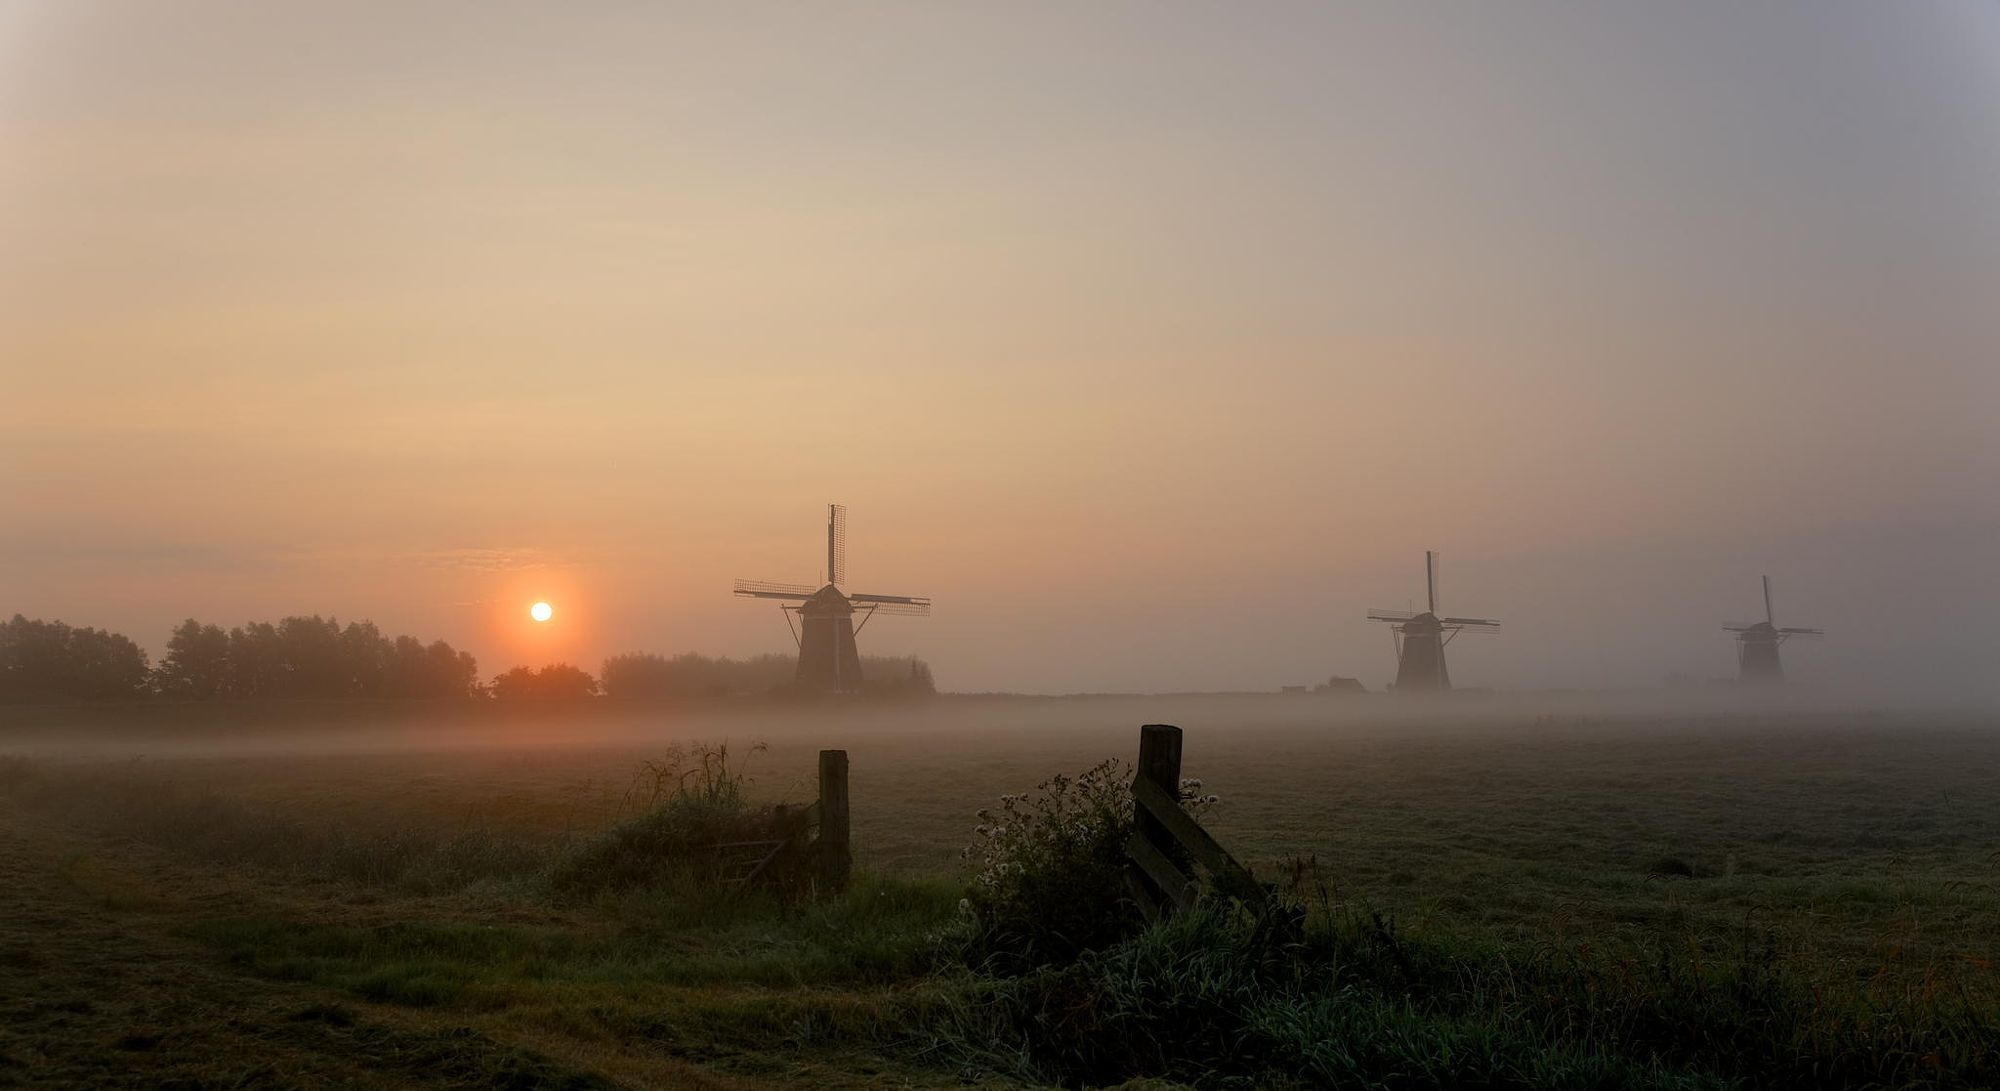 pure Dutch by John Kamstra on 500px